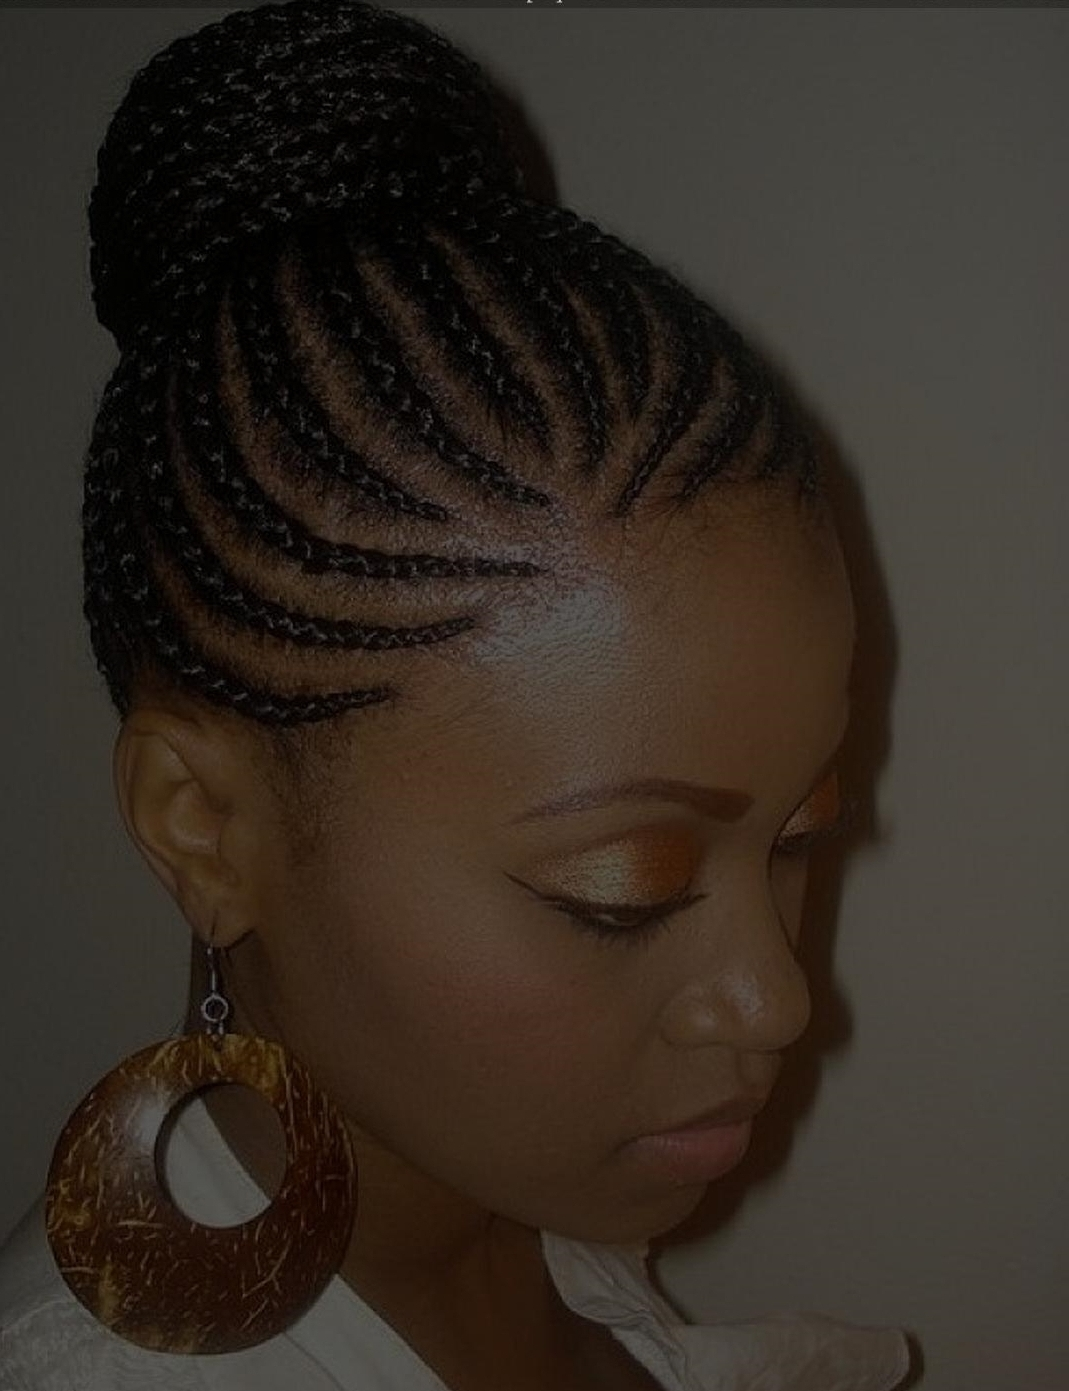 Simple Cornrow Braided Updo Hairstyles 80 Ideas With Cornrow Braided For Elegant Cornrow Updo Hairstyles (View 13 of 15)